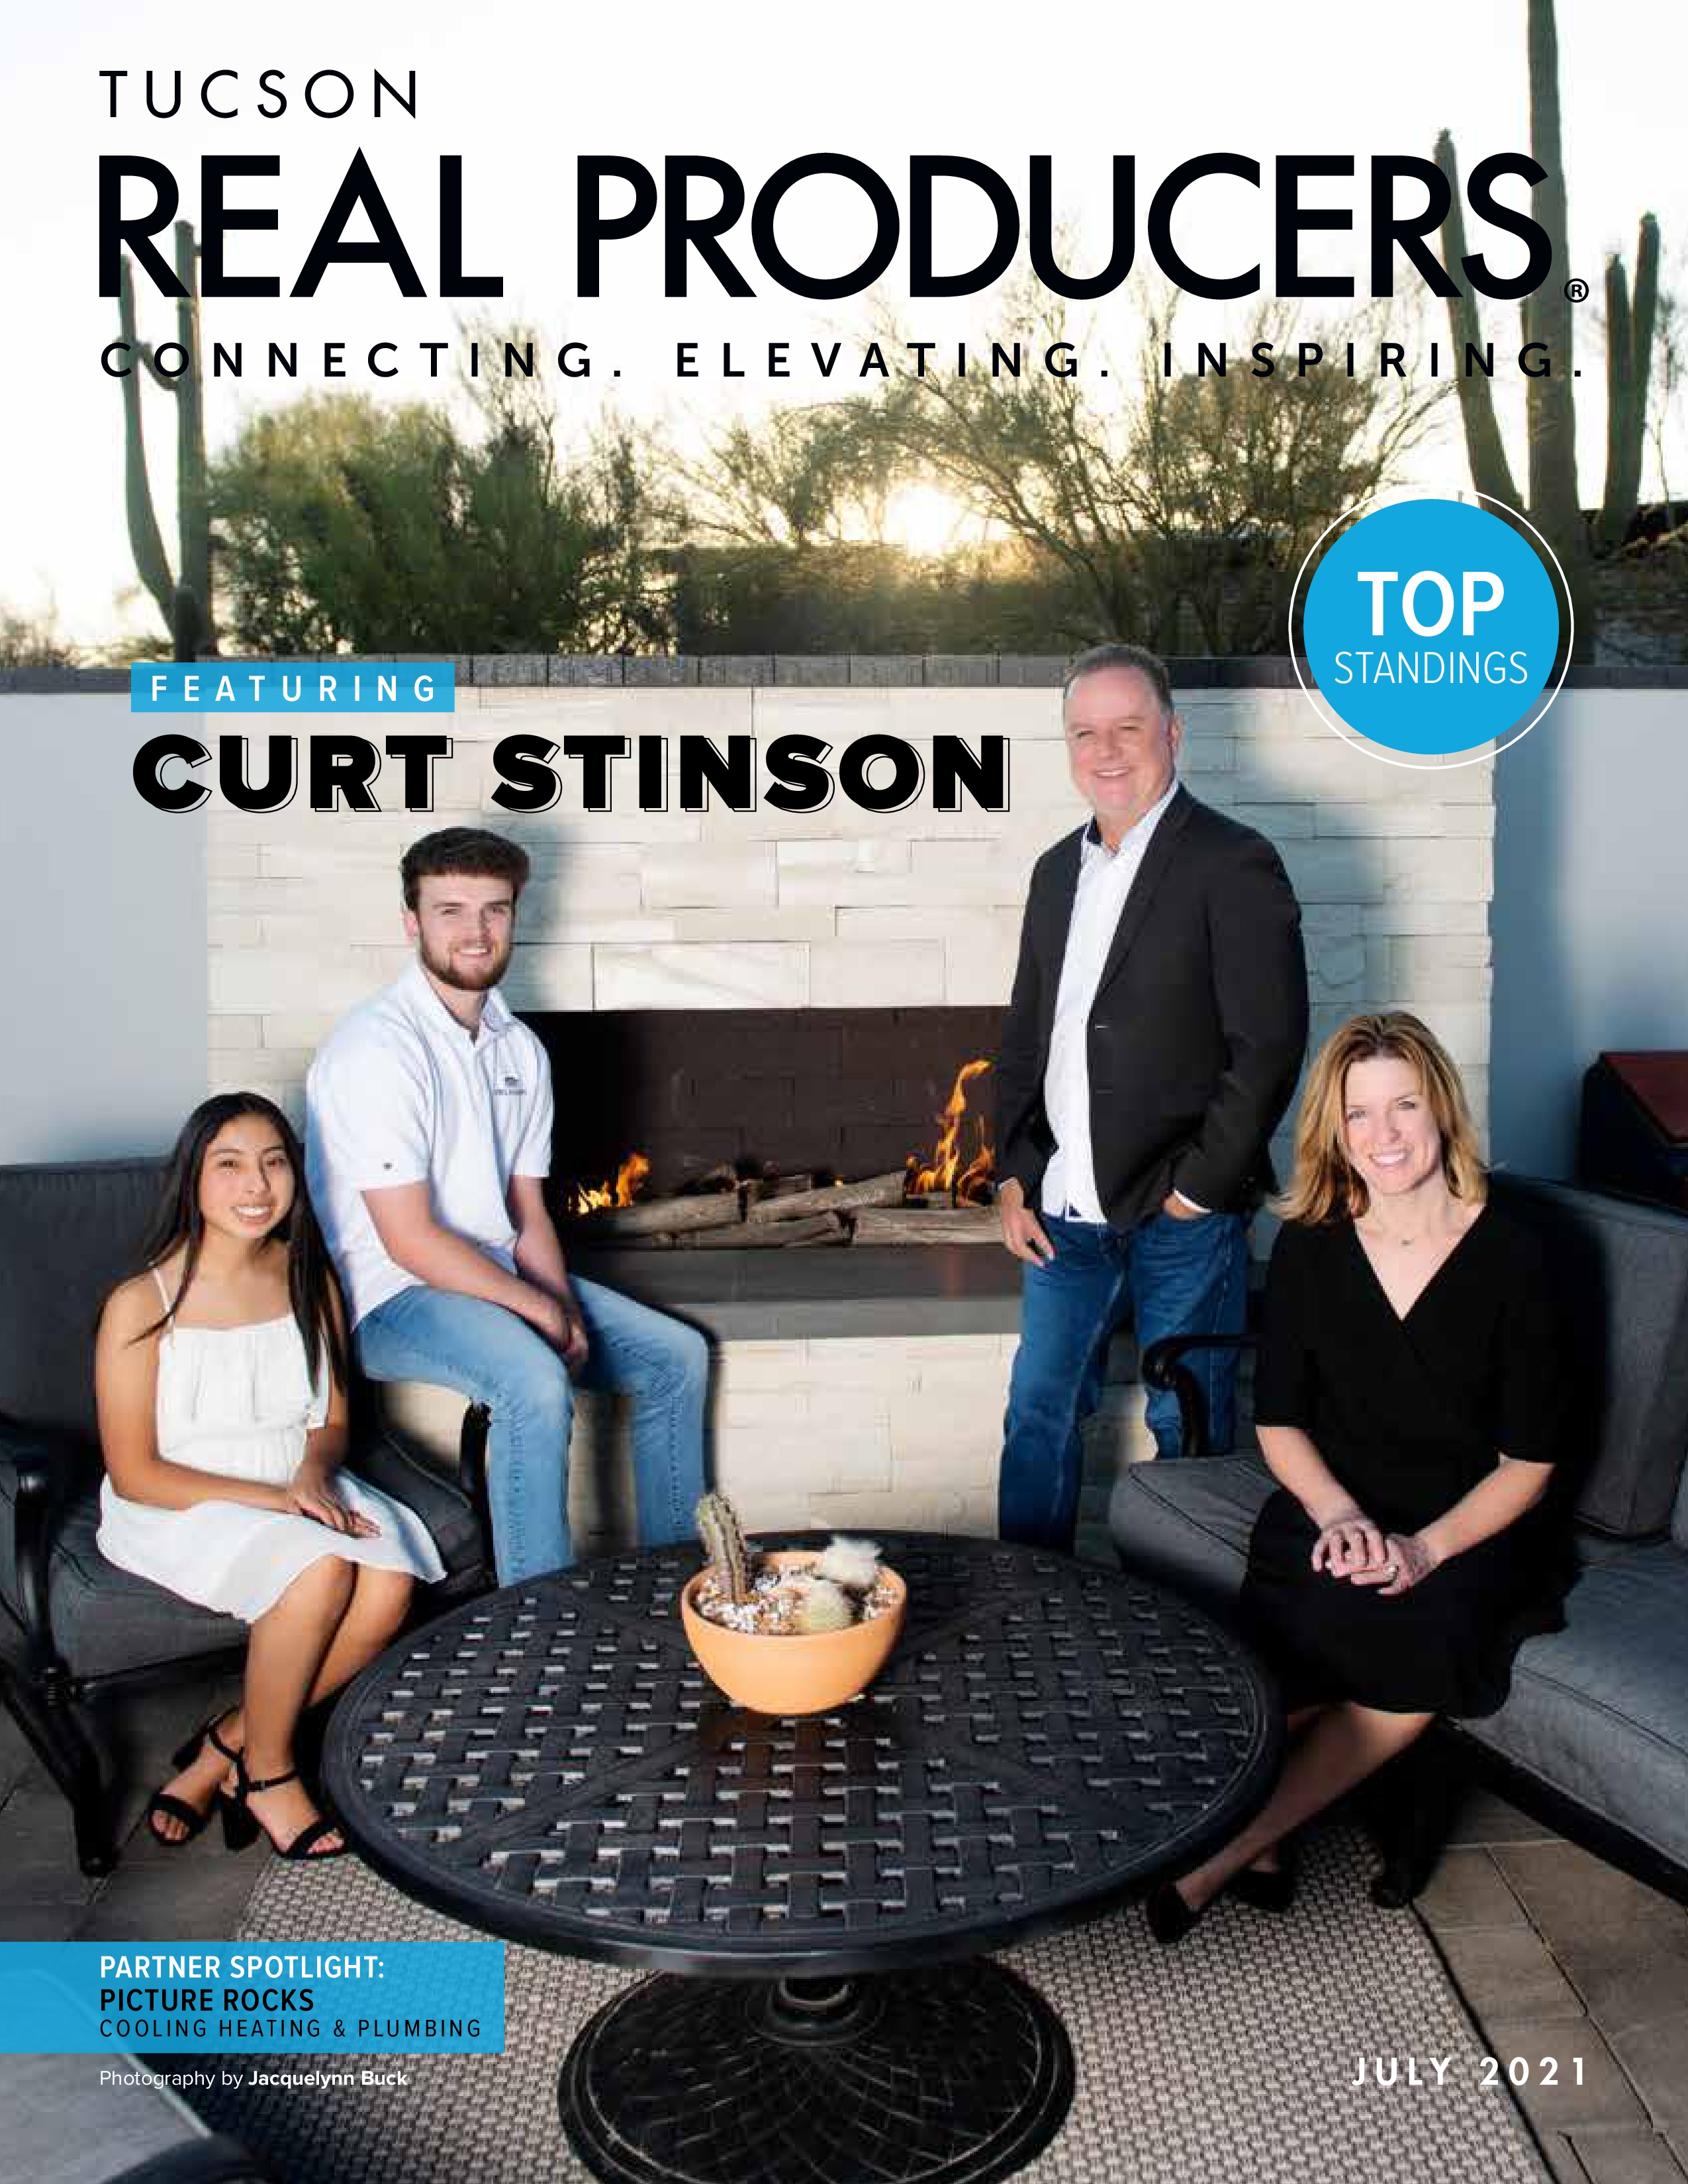 Tucson Real Producers 2021-07-01